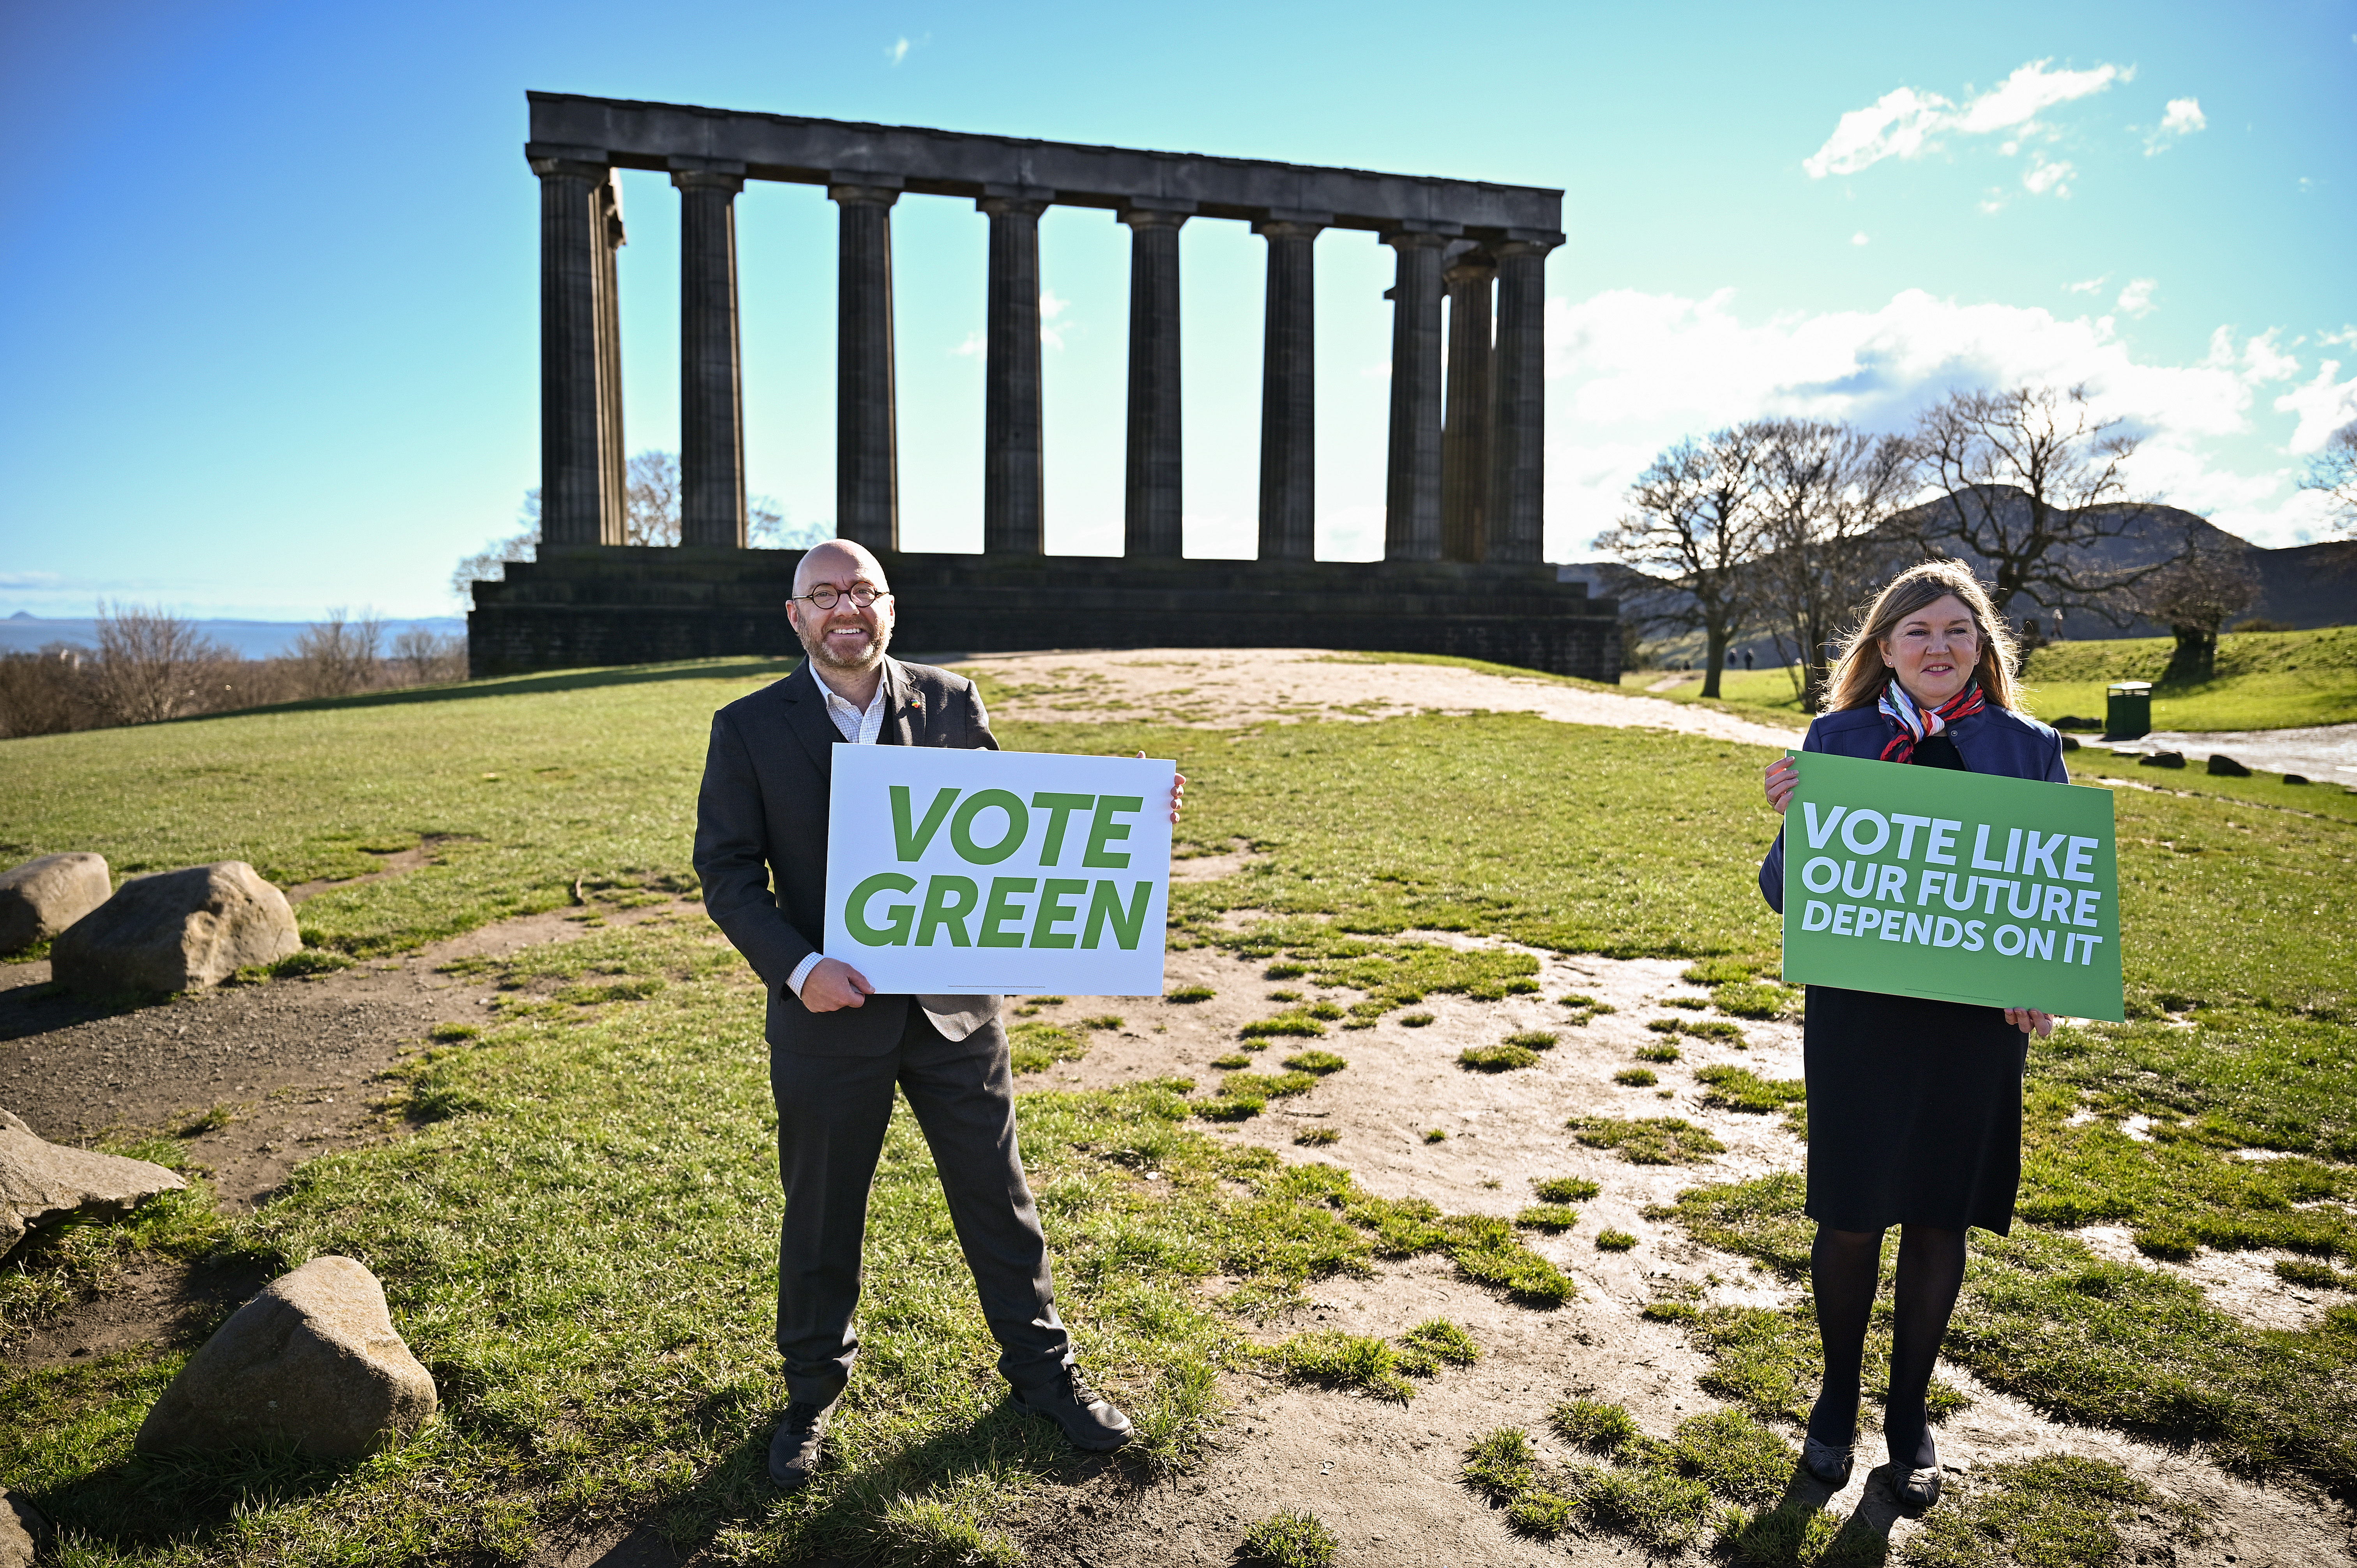 <p>EDINBURGH, SCOTLAND - MARCH 16: Scottish Greens co-leader Patrick Harvie and Alison Johnstone MSP attend the campaign launch for the 2021 Holyrood election at Calton Hill on March 16, 2021 in Edinburgh, Scotland. The party unveiled the new slogan 'Vote Like Our Future Depends on It' as it launched its campaign for the election on 6 May. (Photo by Jeff J Mitchell/Getty Images)</p>